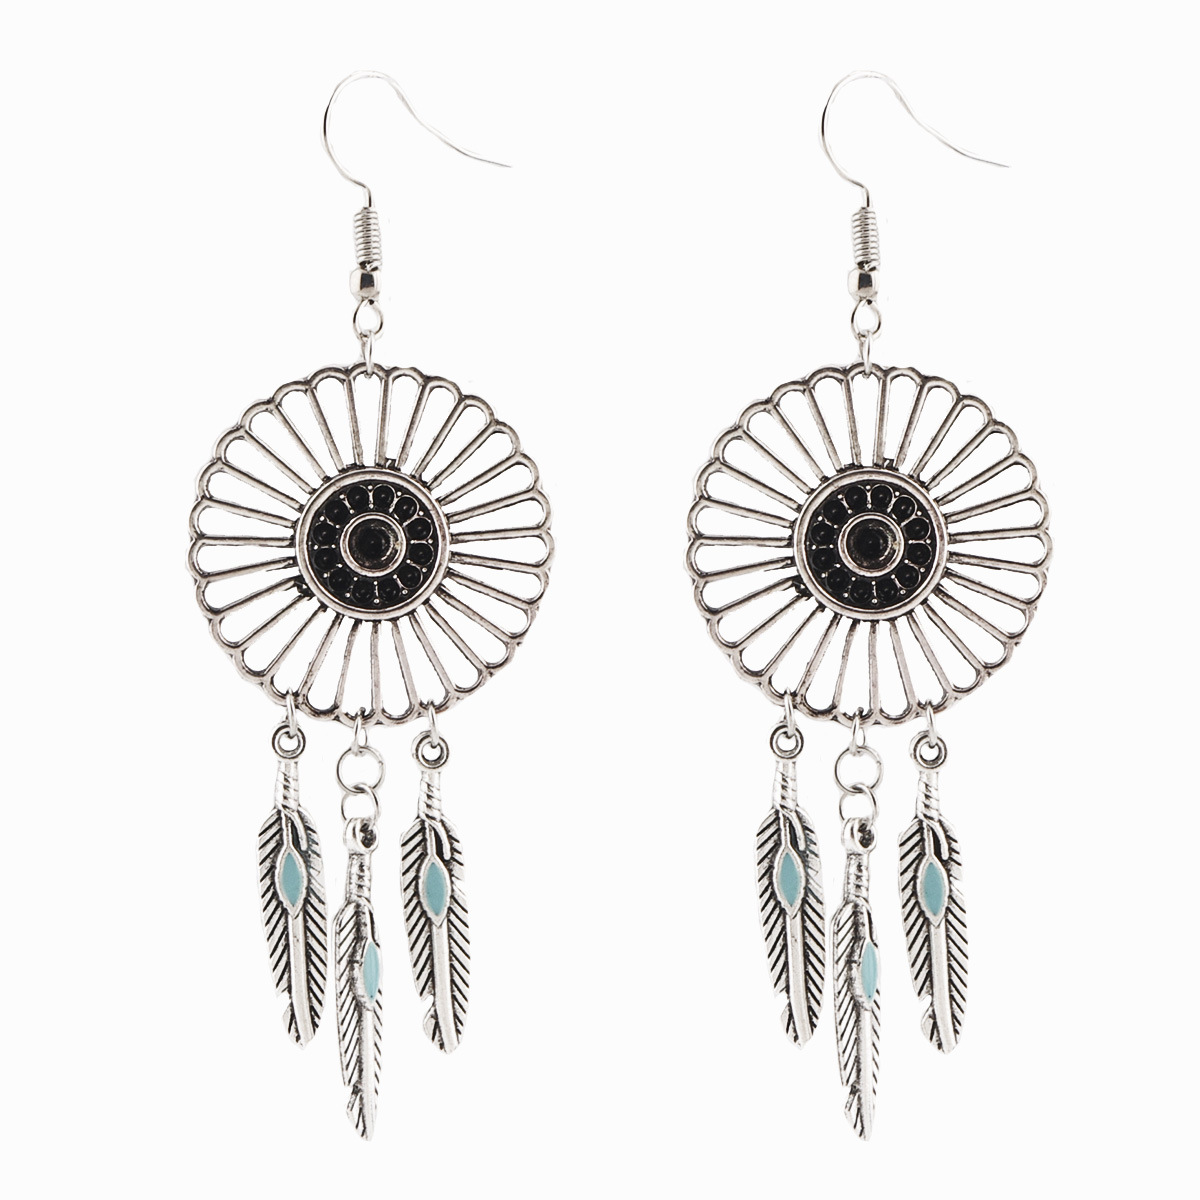 Funique Vintage Retro Drop Boho Tassel Enamel Feather Dreamcatcher Earrings  For Women 2017 Fashion Jewelry Dangle